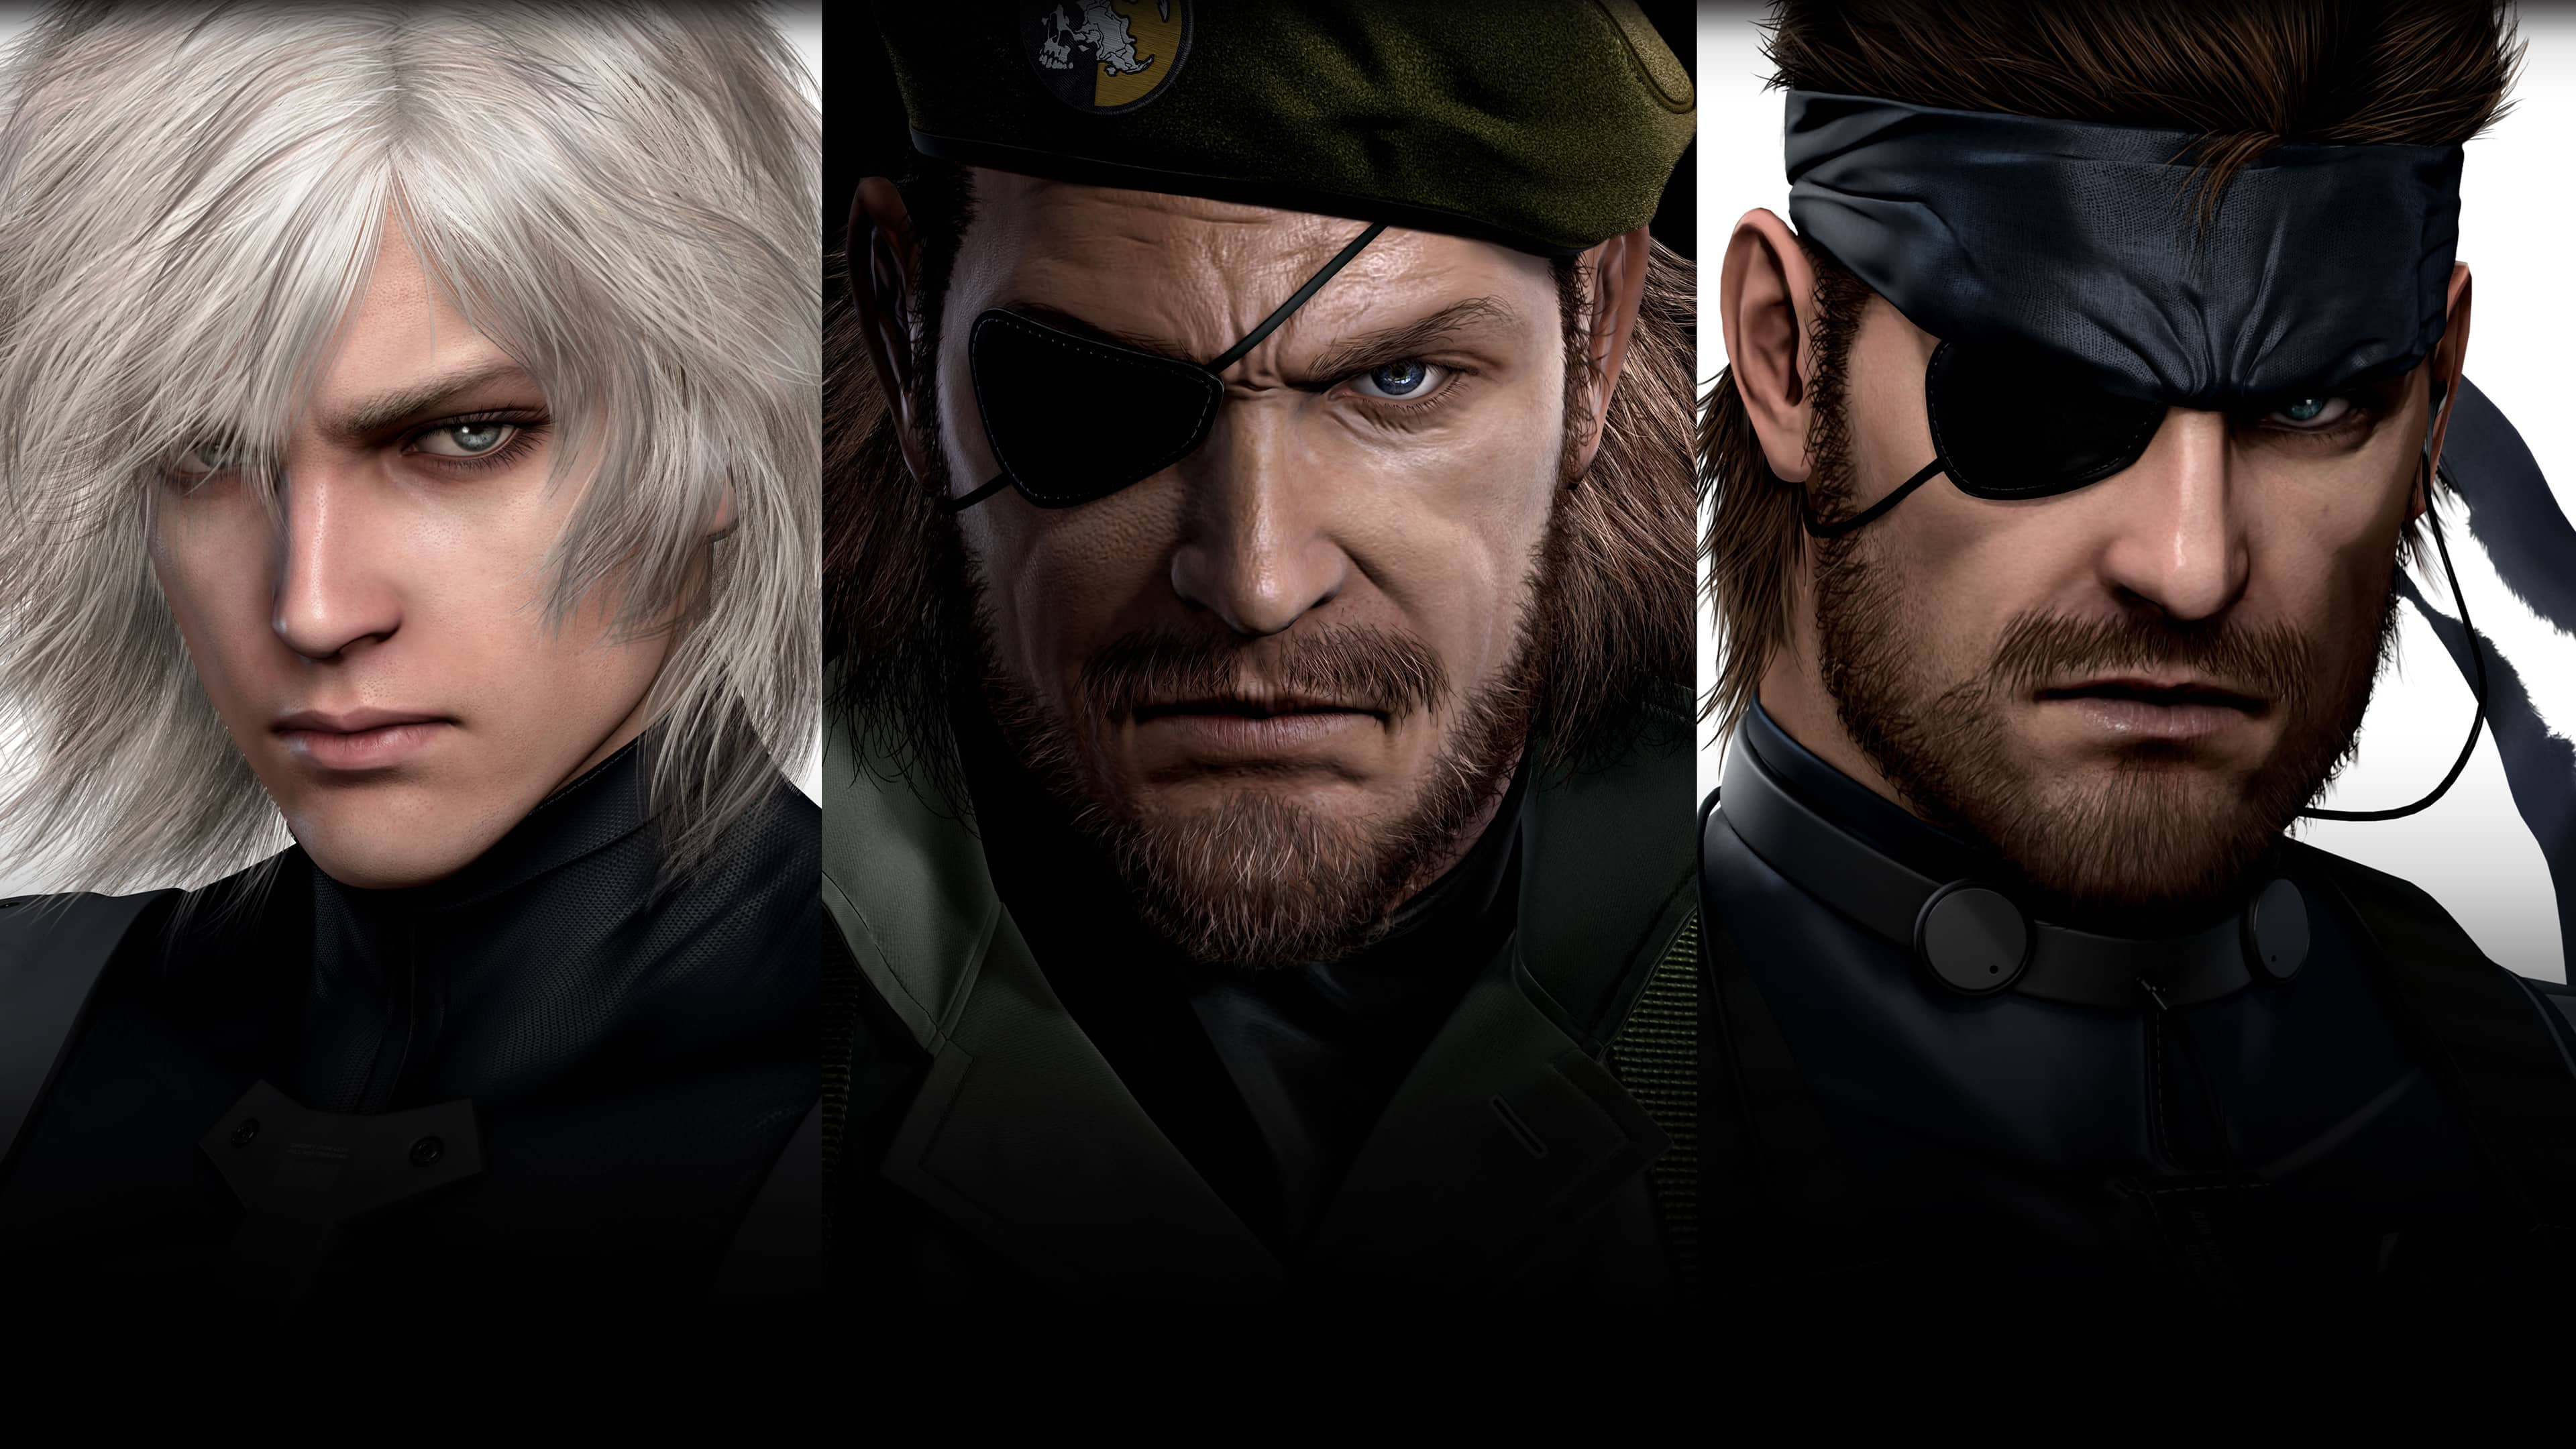 metal gear solid hd collection uhd 4k wallpaper